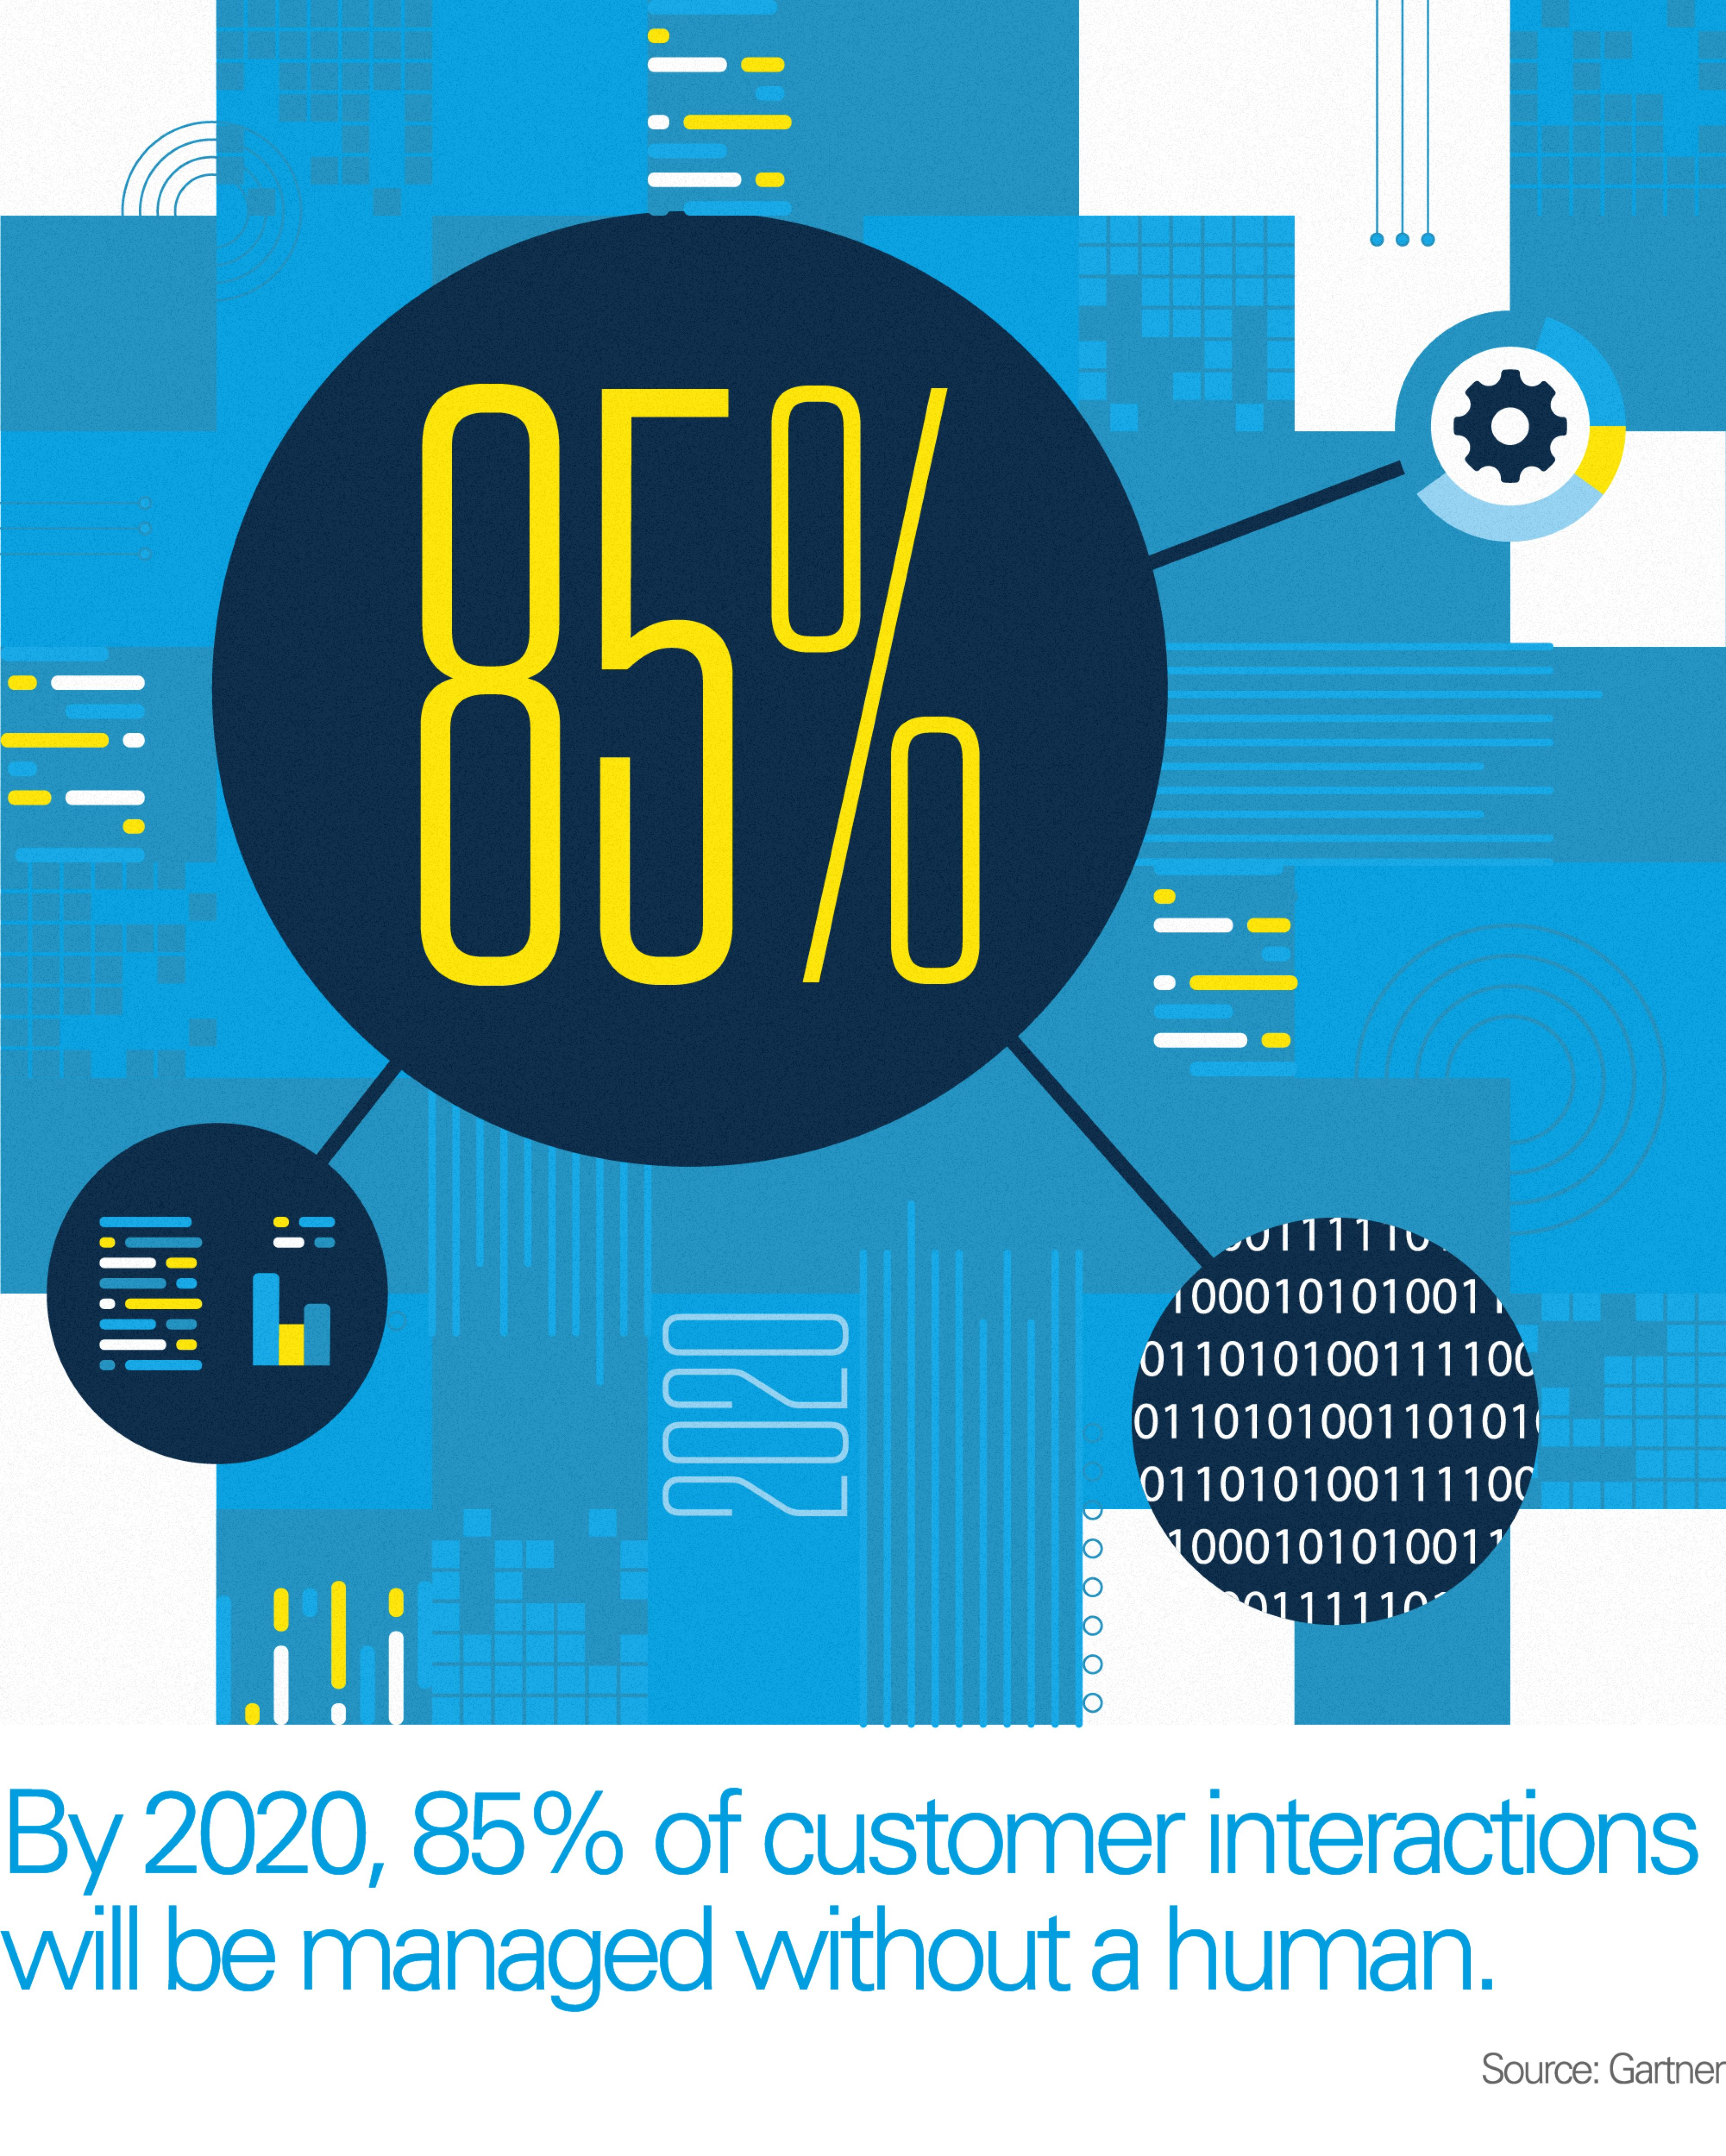 Graphic shows by 2020, 85% of customer interactions will be managed without a human